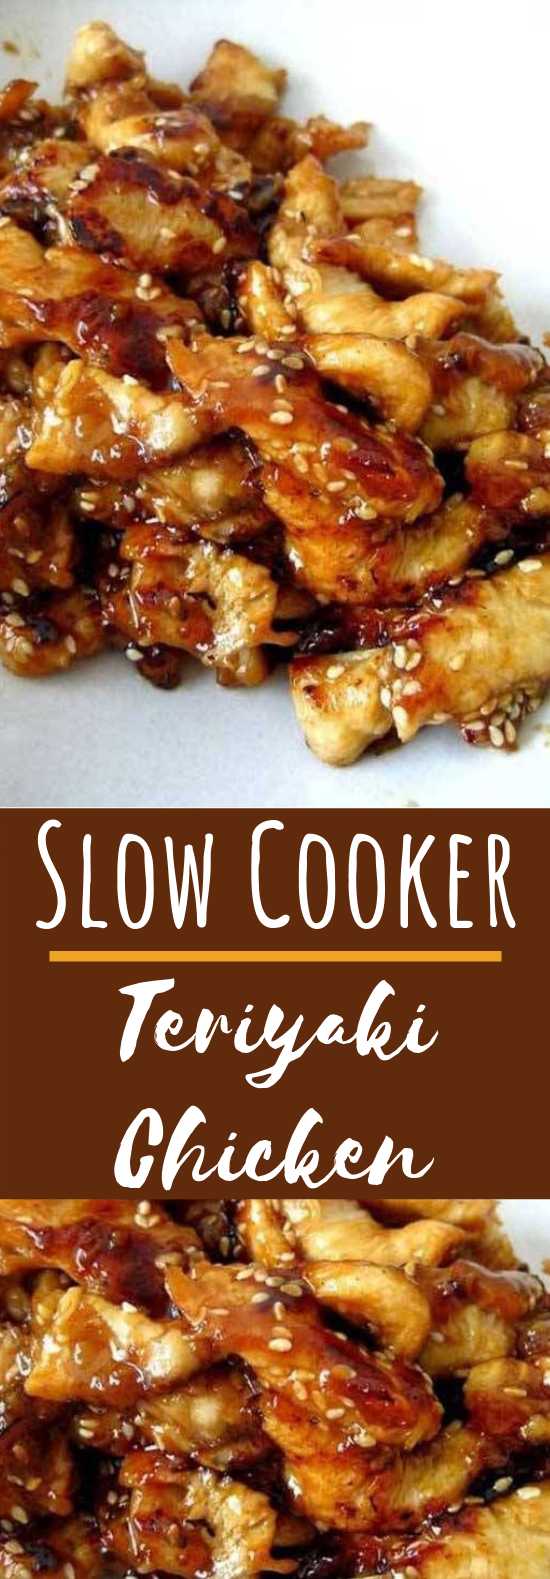 Slow Cooker Teriyaki Chicken #dinner #chicken